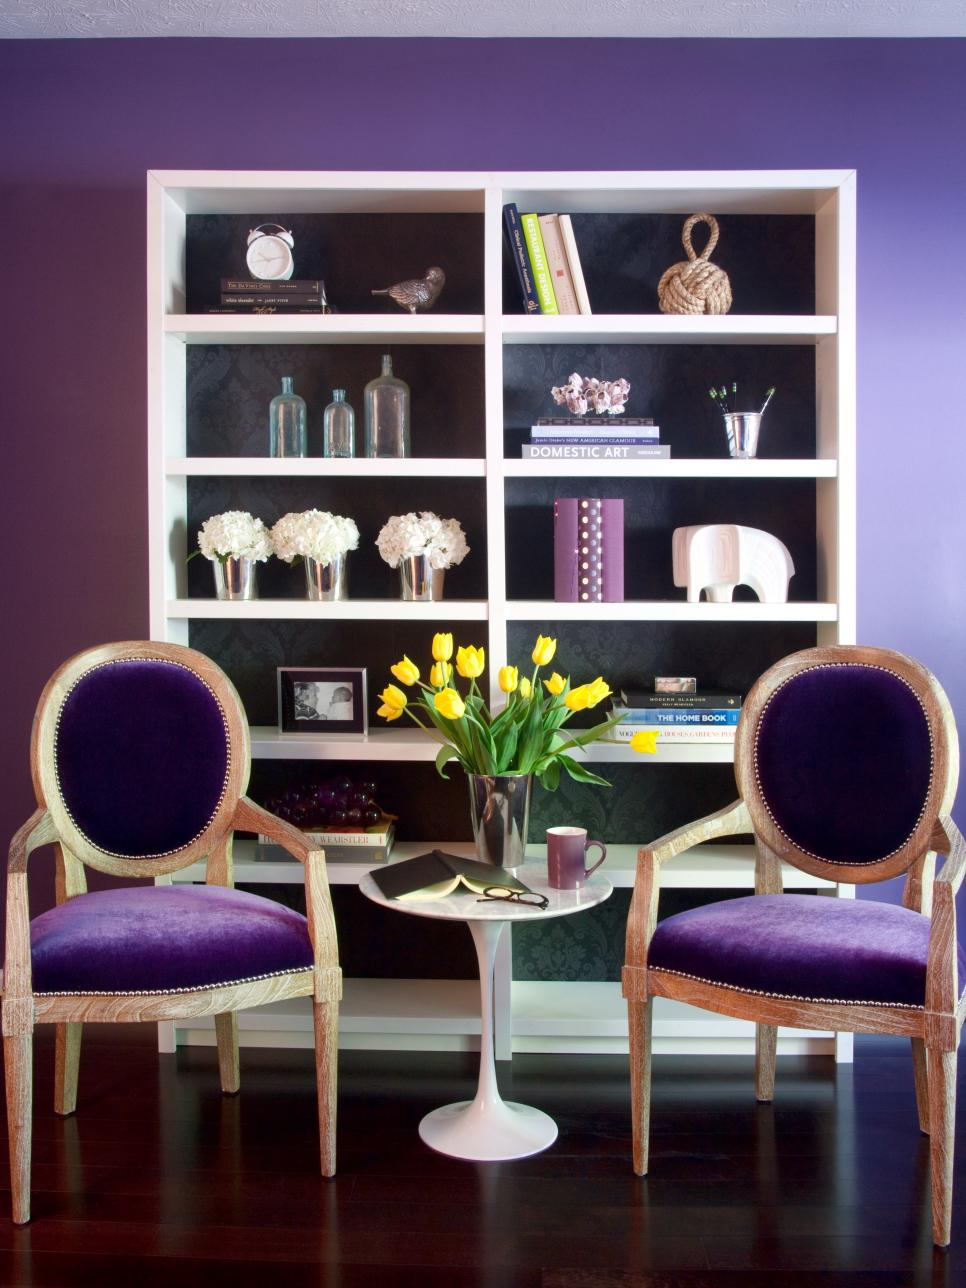 Purple room with white bookcase, velvet chairs and accessories.